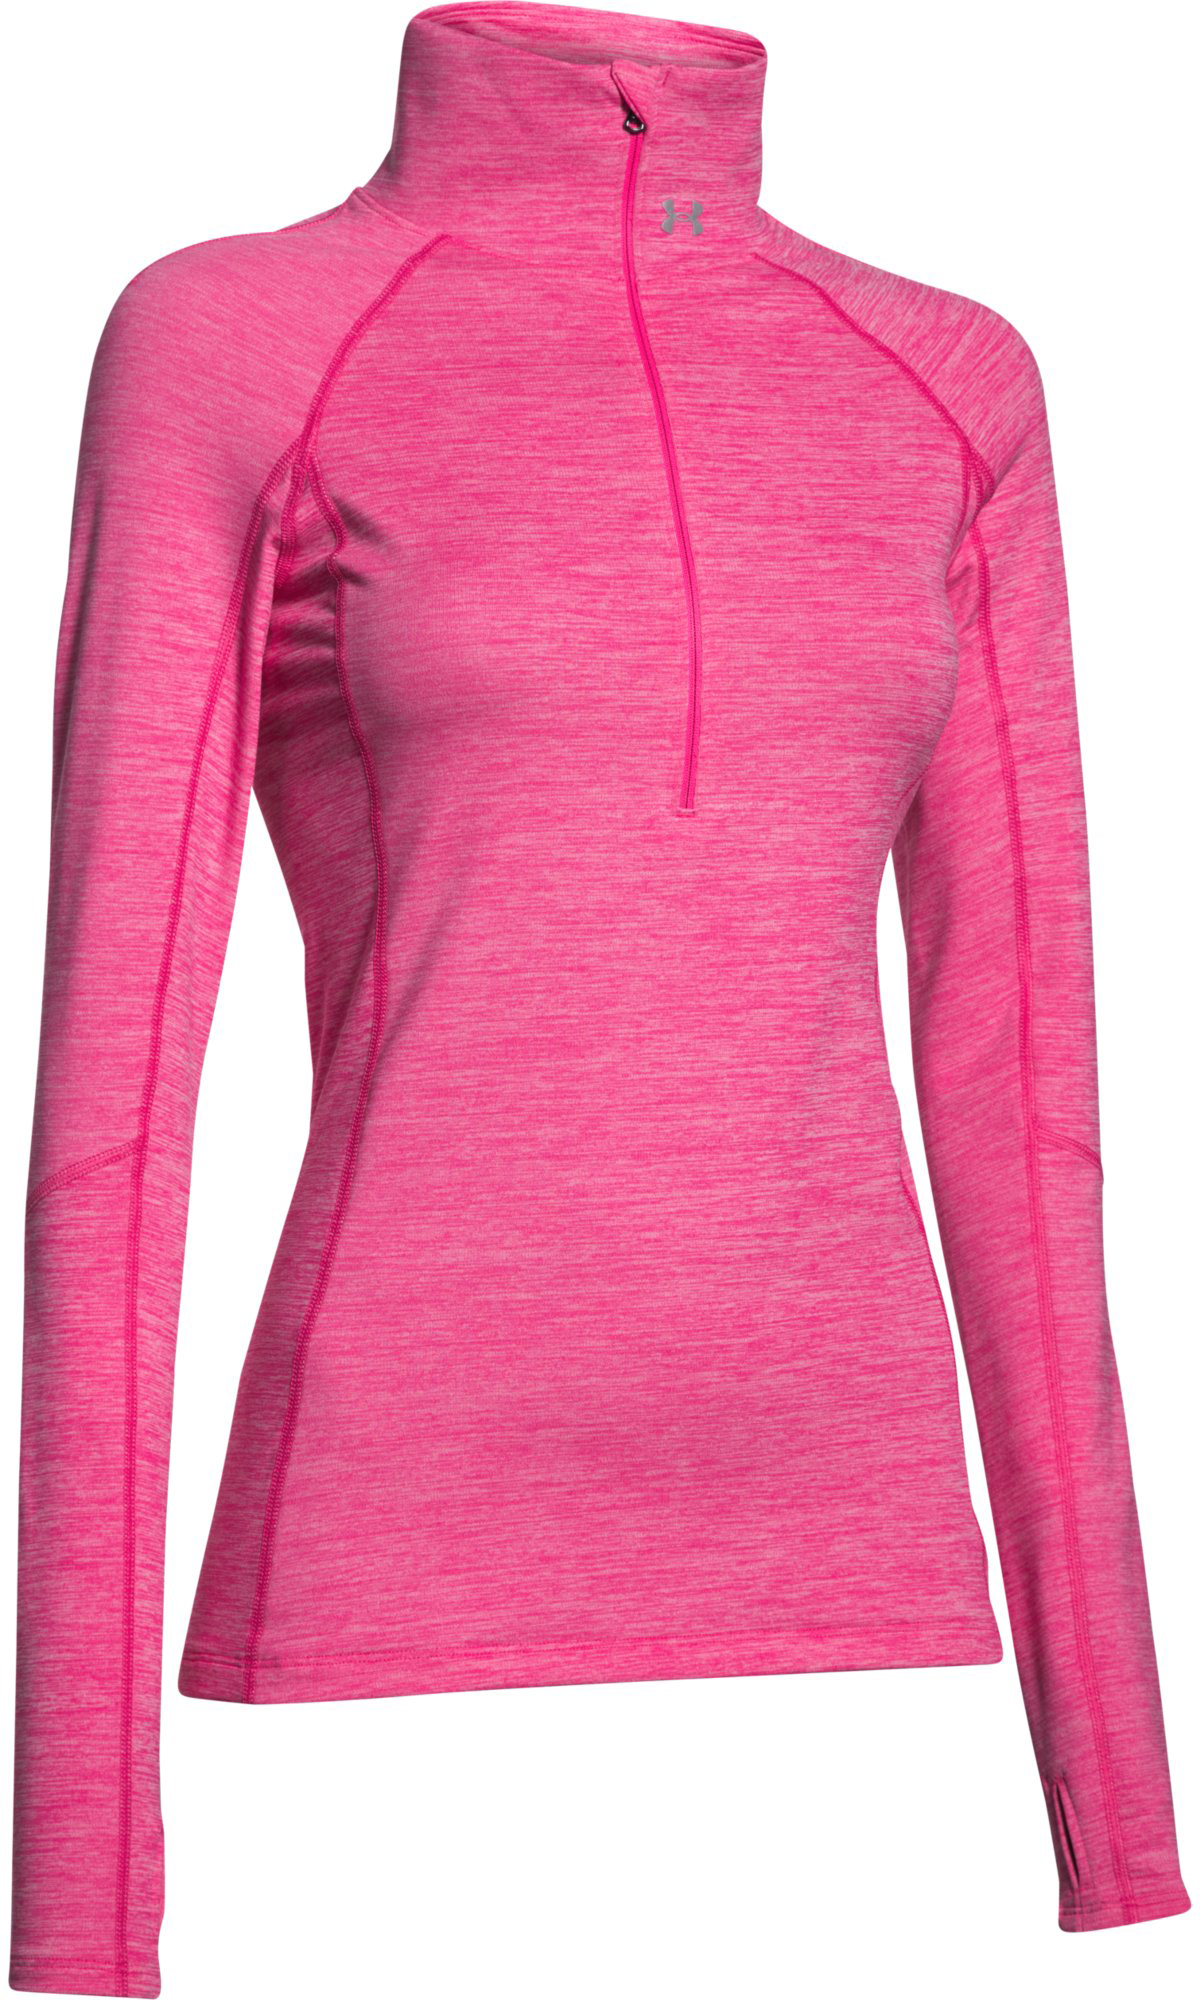 b4b64570 Cheap under armour long sleeve zip Buy Online >OFF32% Discounted